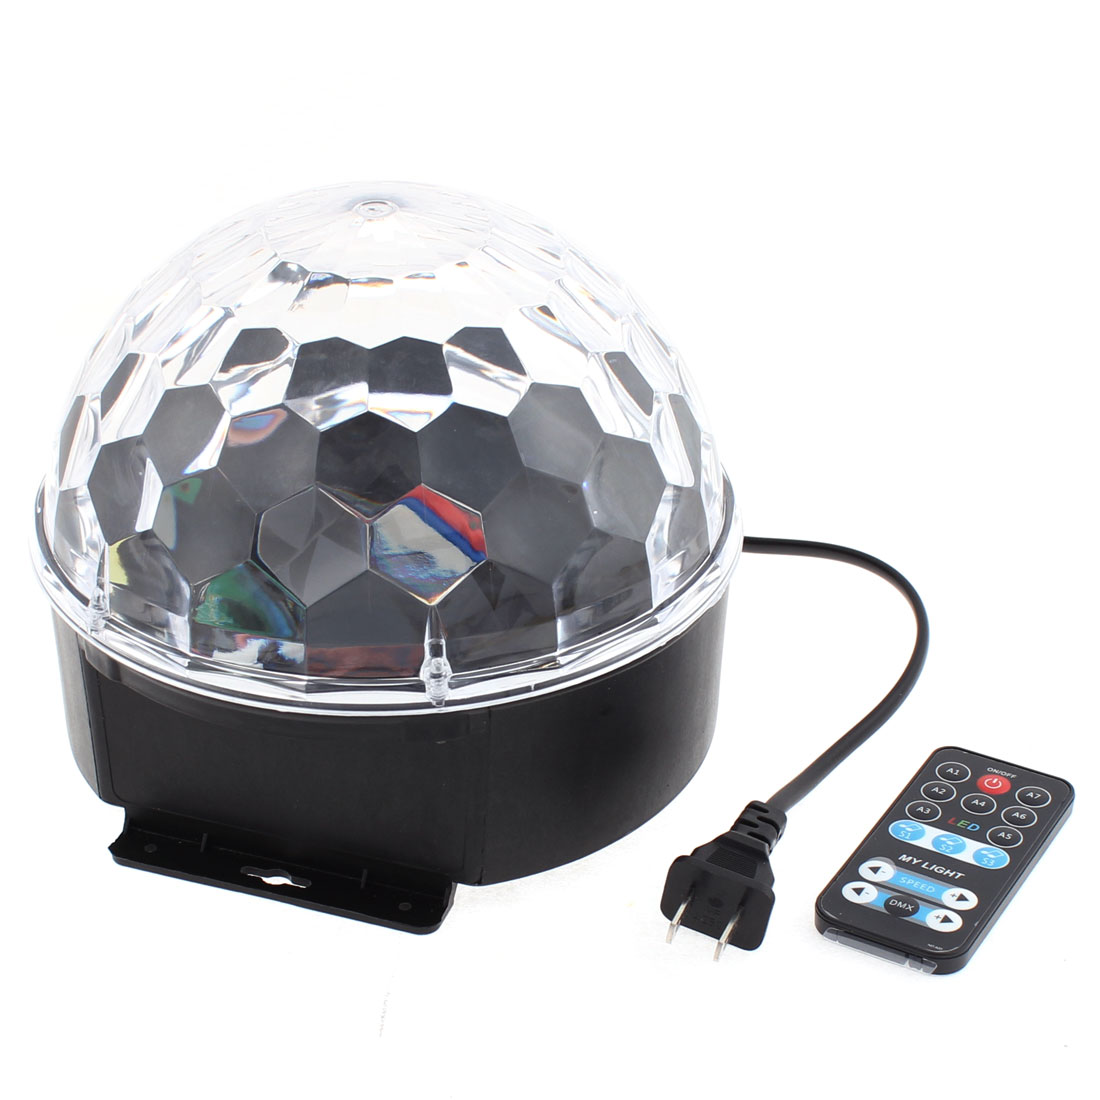 AC90-240V US Plug Projector Disco Stage Lighting Colorful Magic Ball by Unique-Bargains